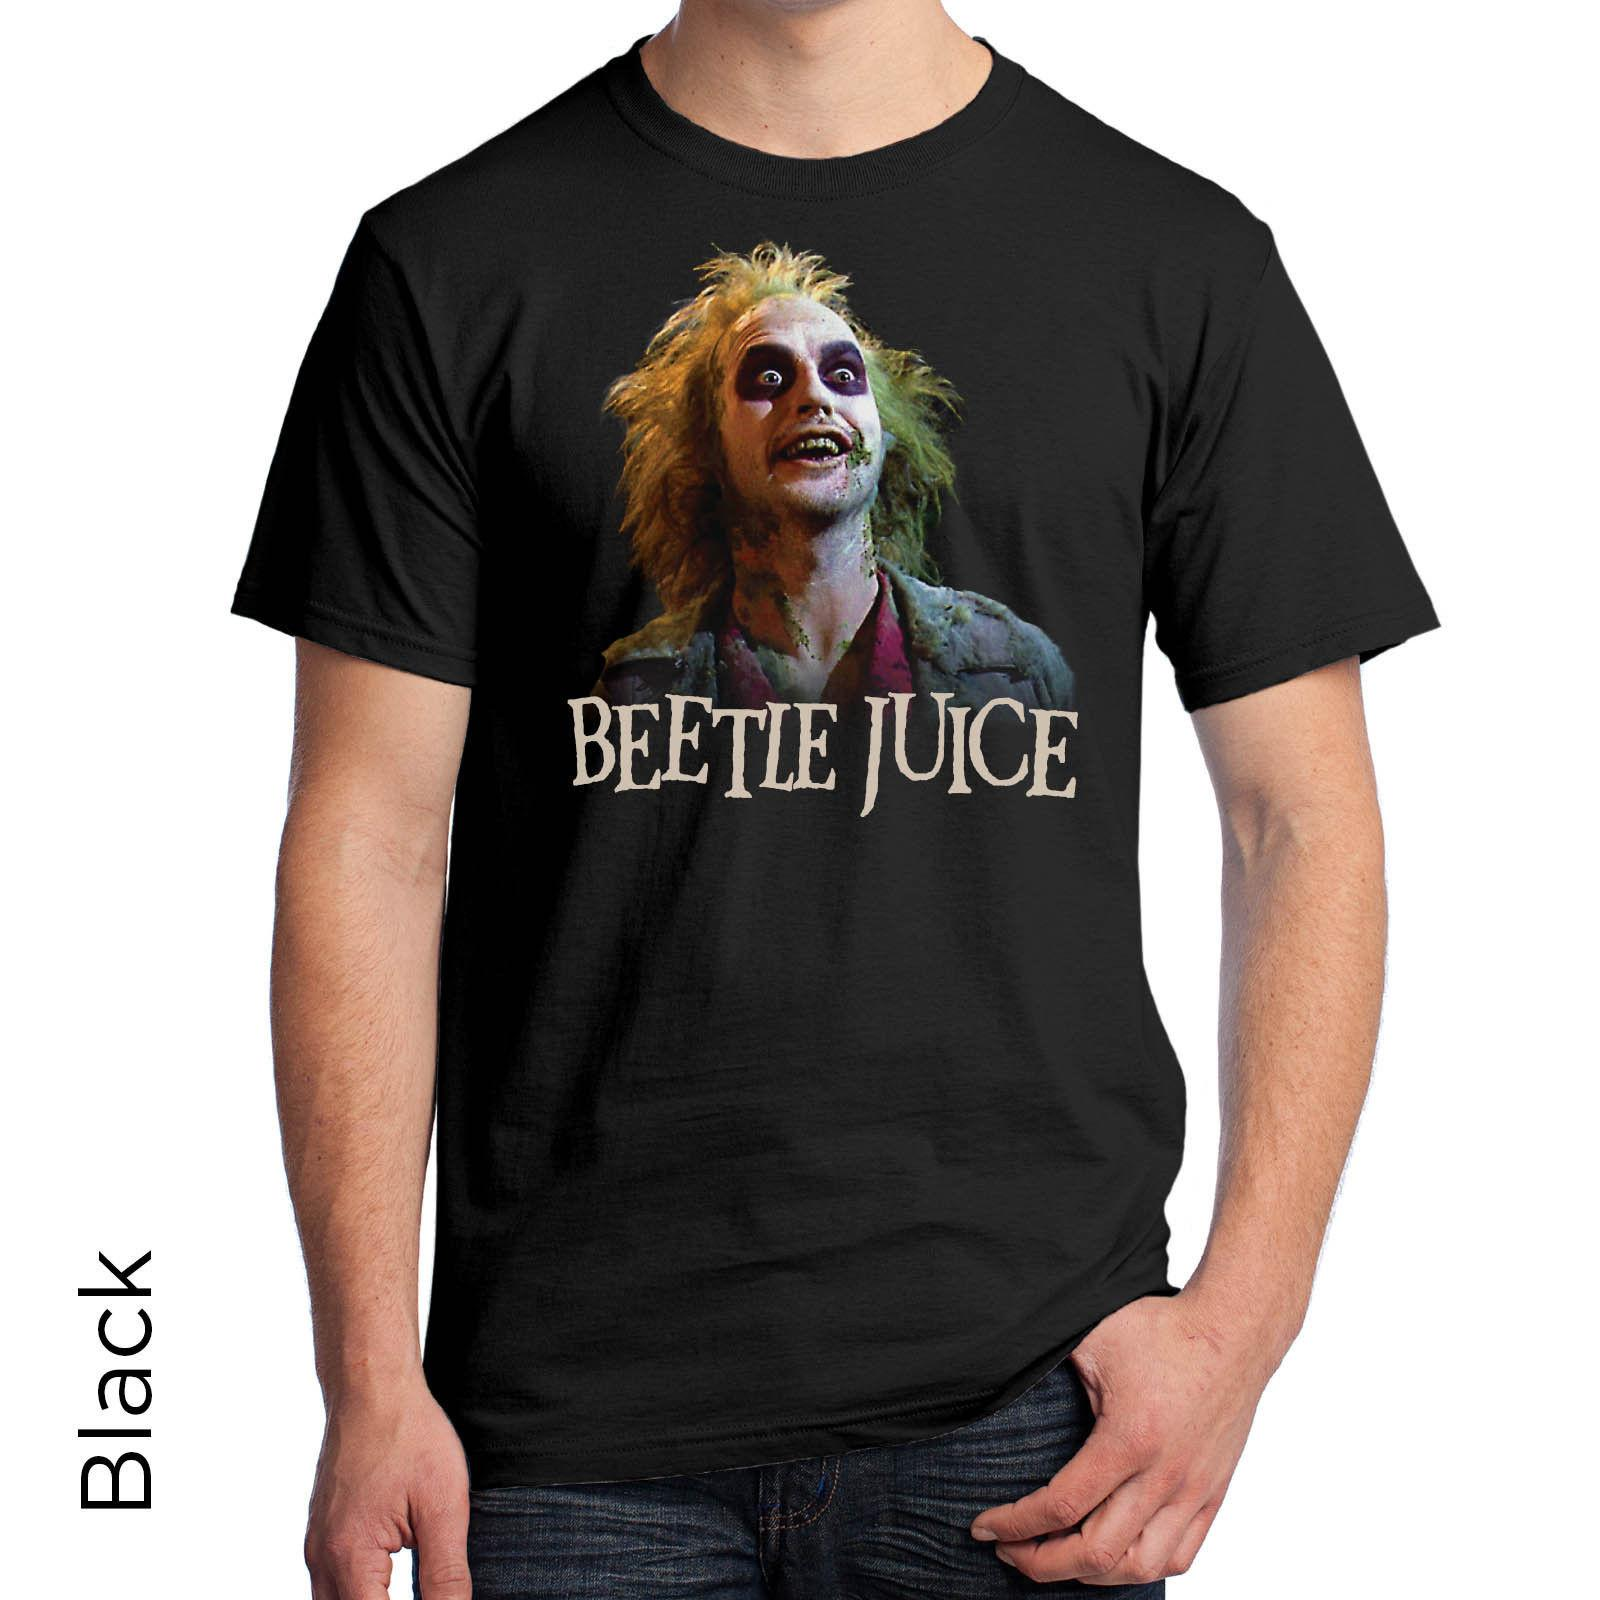 2197ca4ceb90 Beetlejuice Graphic T Shirt Full Color 80s Tim Burton Michael Keaton 288  Funny Unisex Casual T Shirts Funky Tee Shirt For Sale From  Afterlightclothing, ...